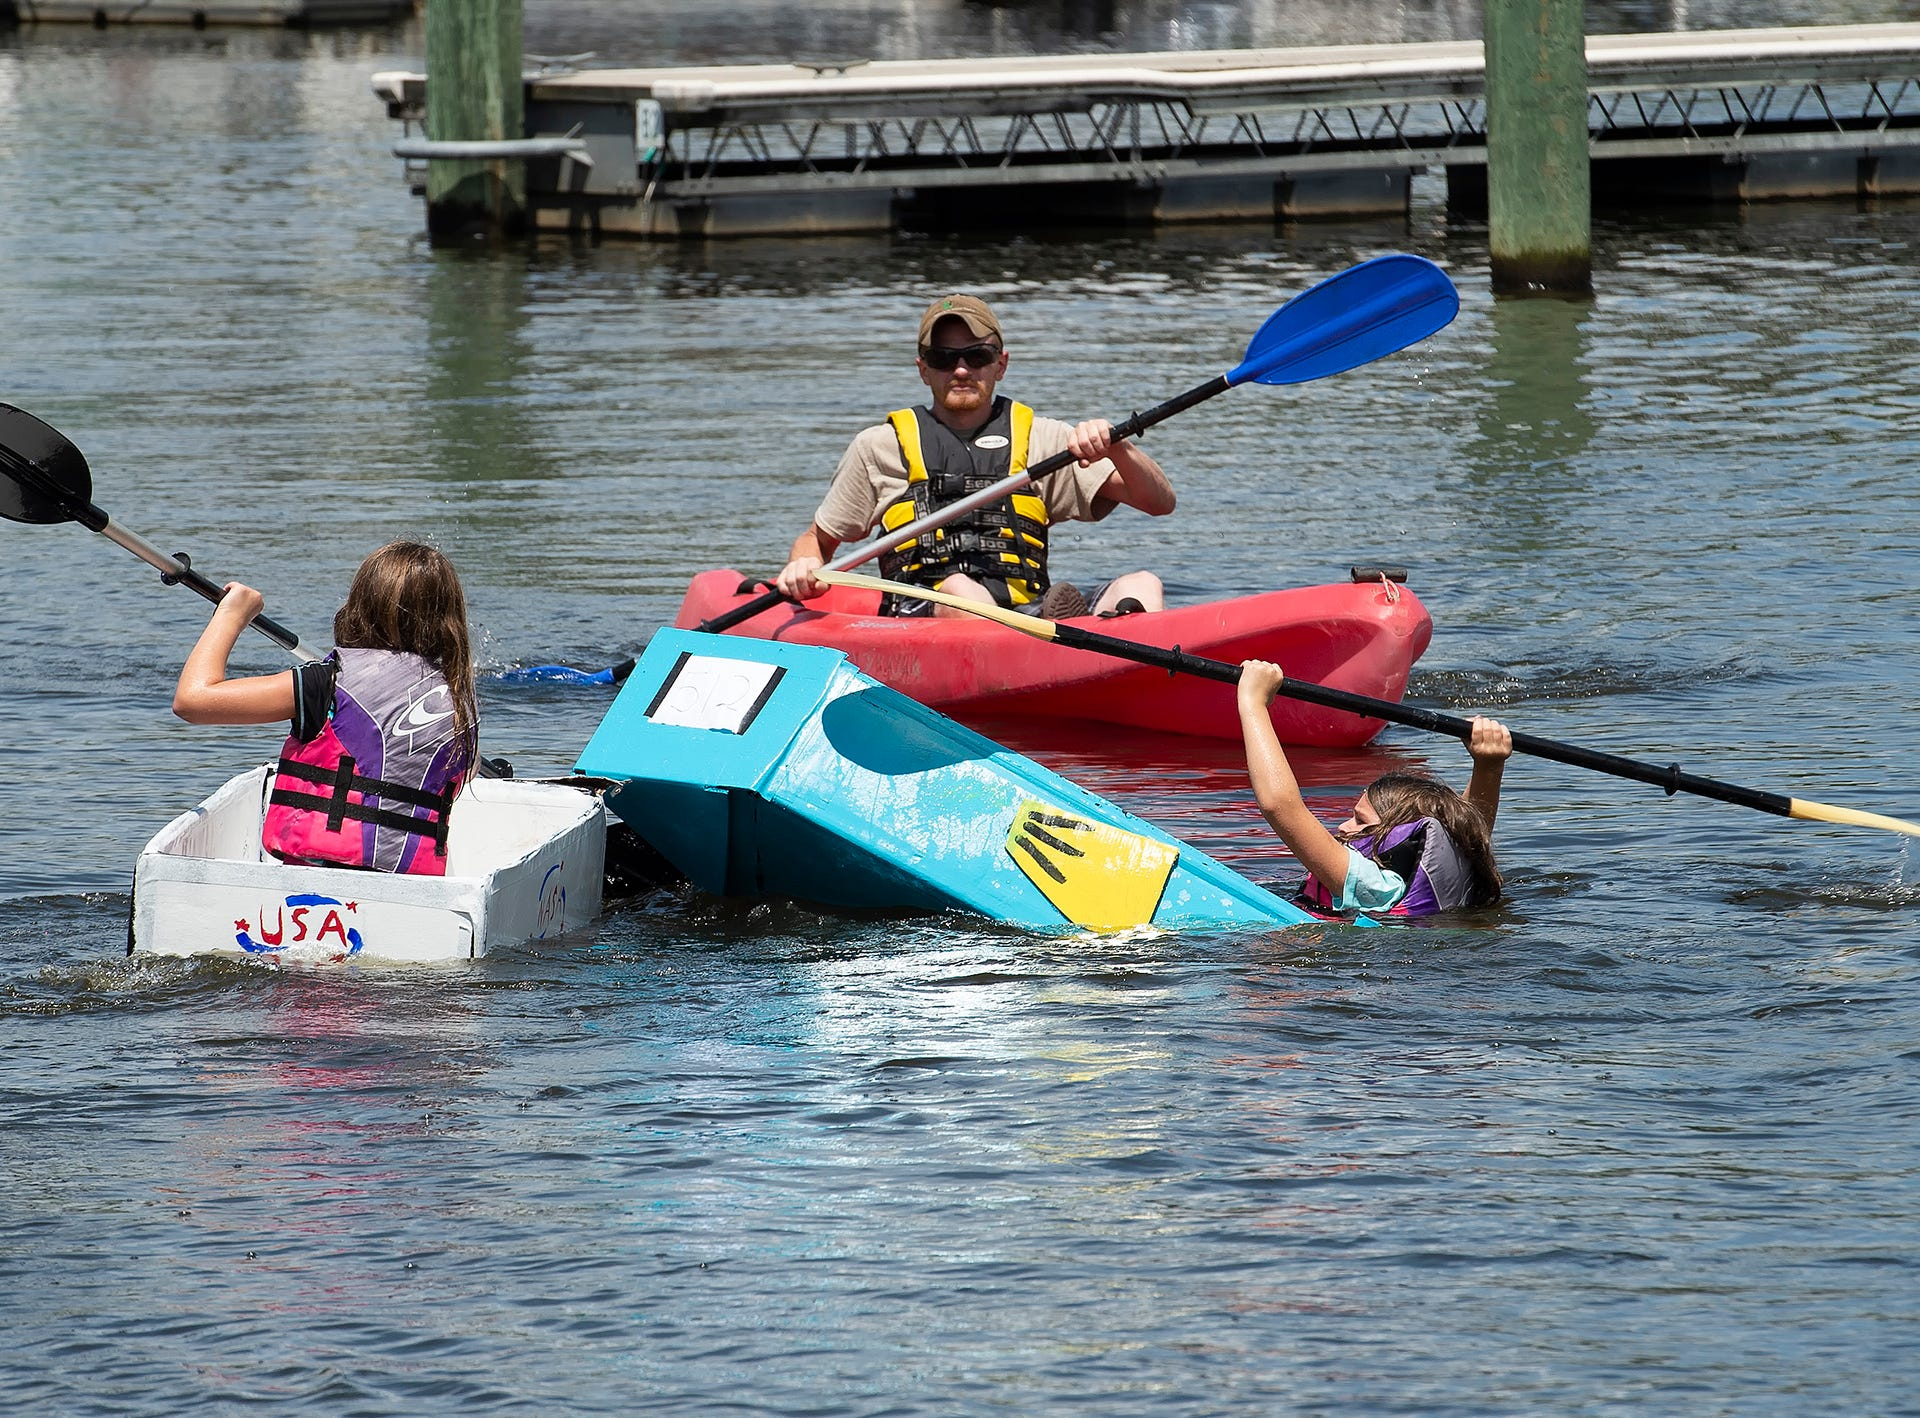 The Town of Blades hosts the fifth annual Recycled Cardboard Boat Regatta.